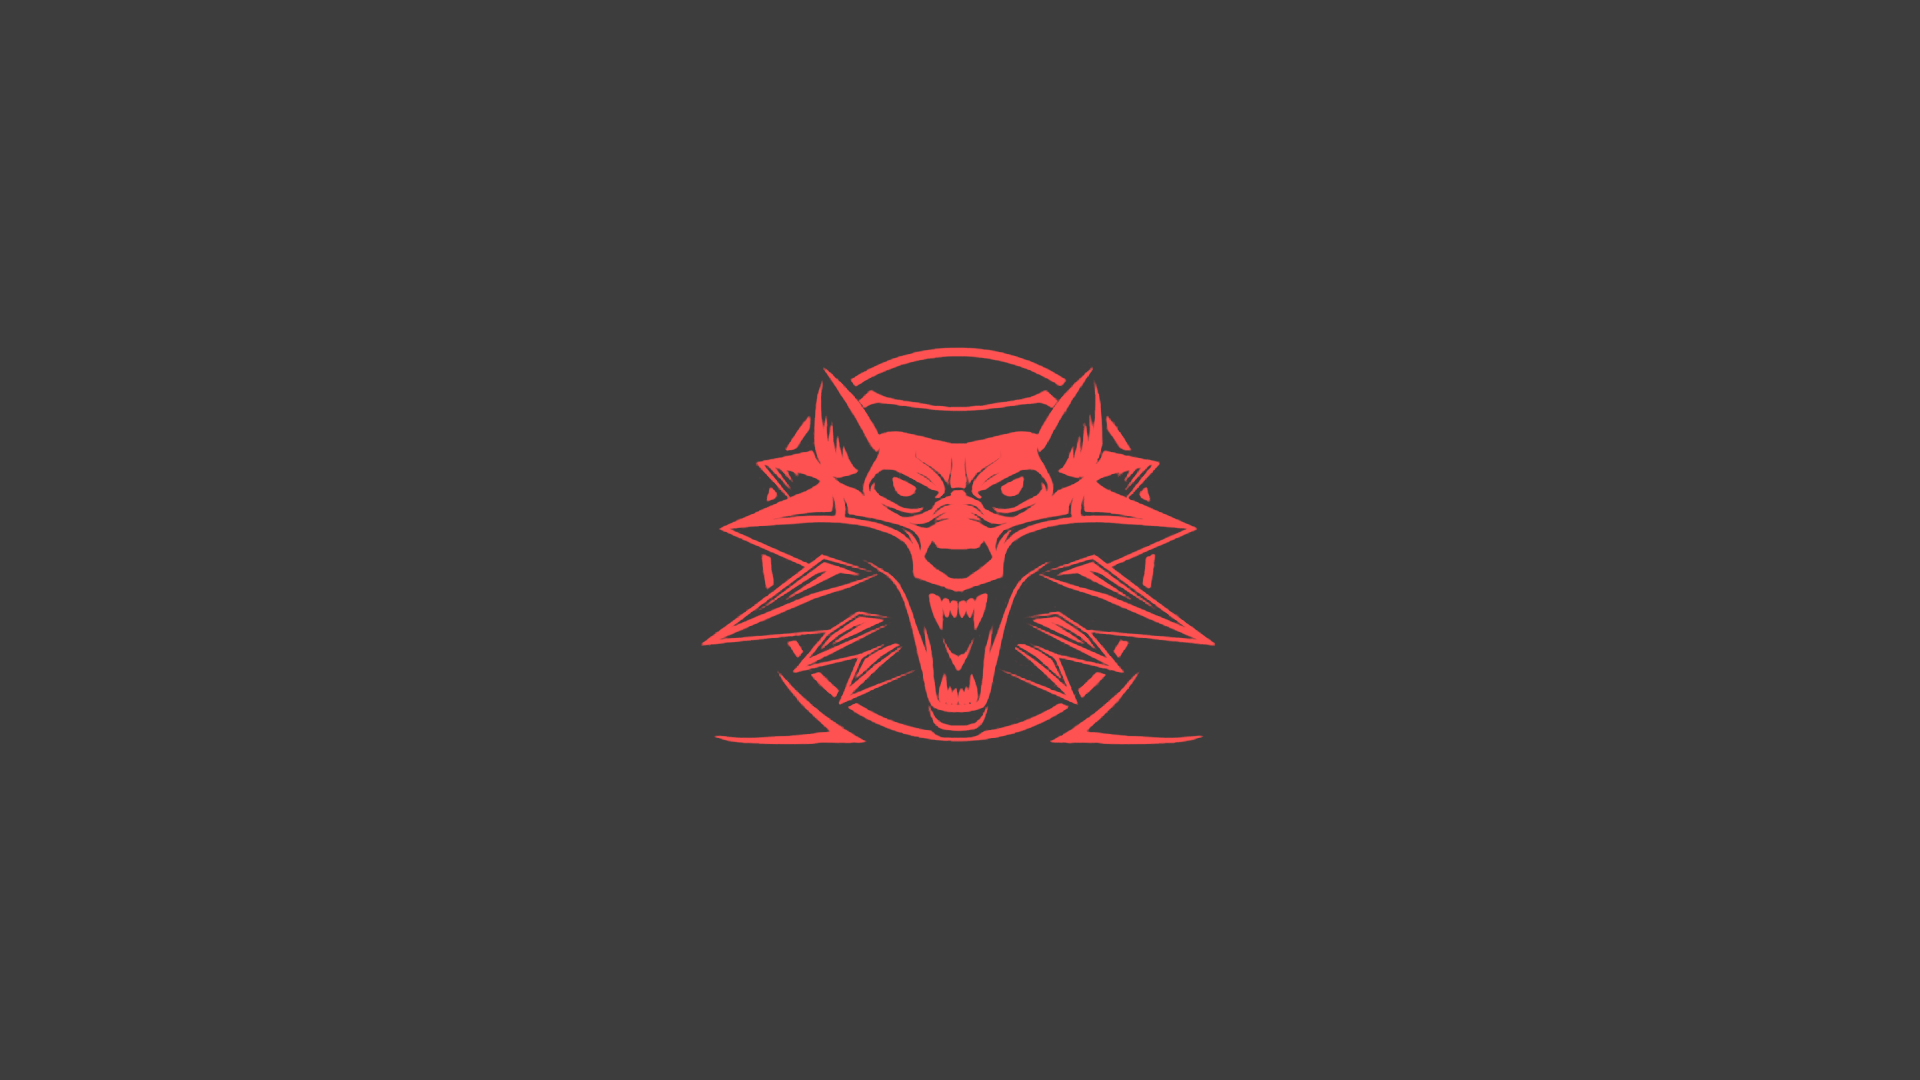 Hd Gamer Wallpaper Minimalist Wallpaper I Made A While Ago Witcher